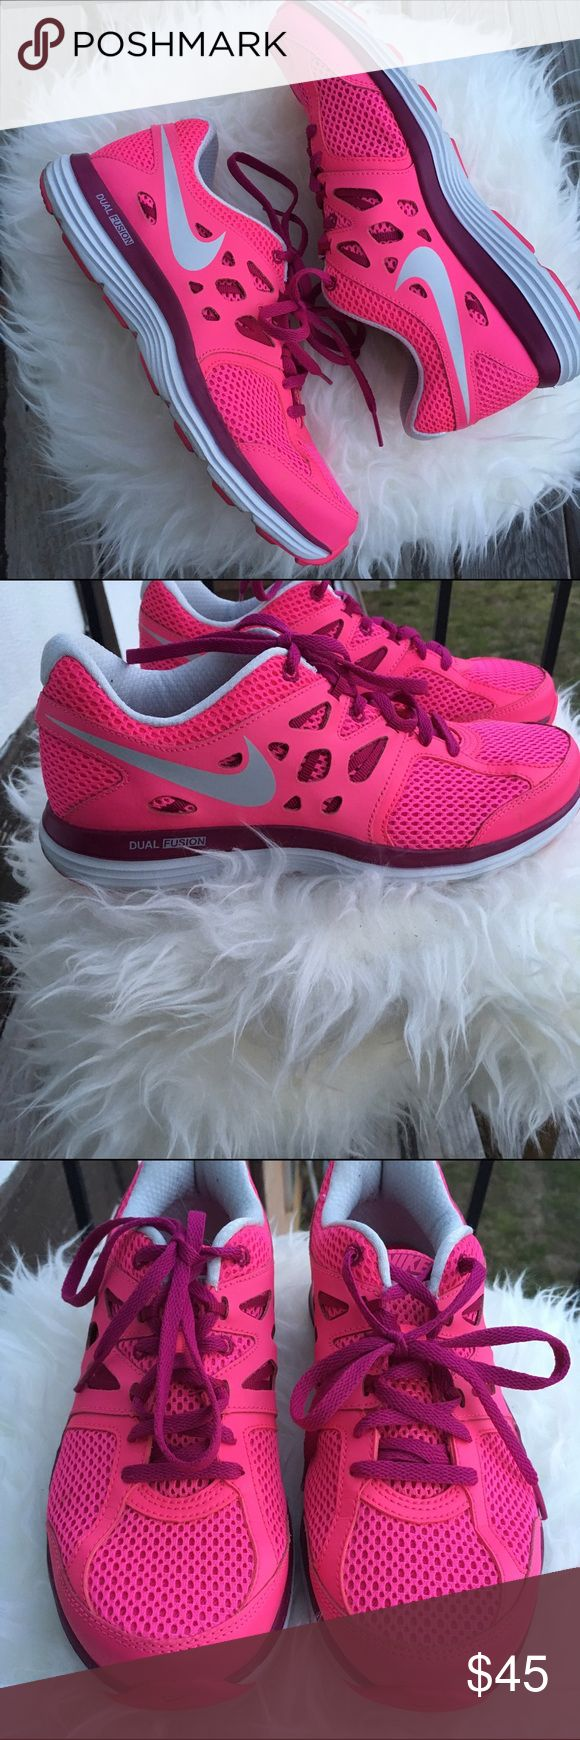 Nike Dual Fusion Sneakers Pink Nike Dual Fusion Sneakers. Like new! Nike Shoes Sneakers